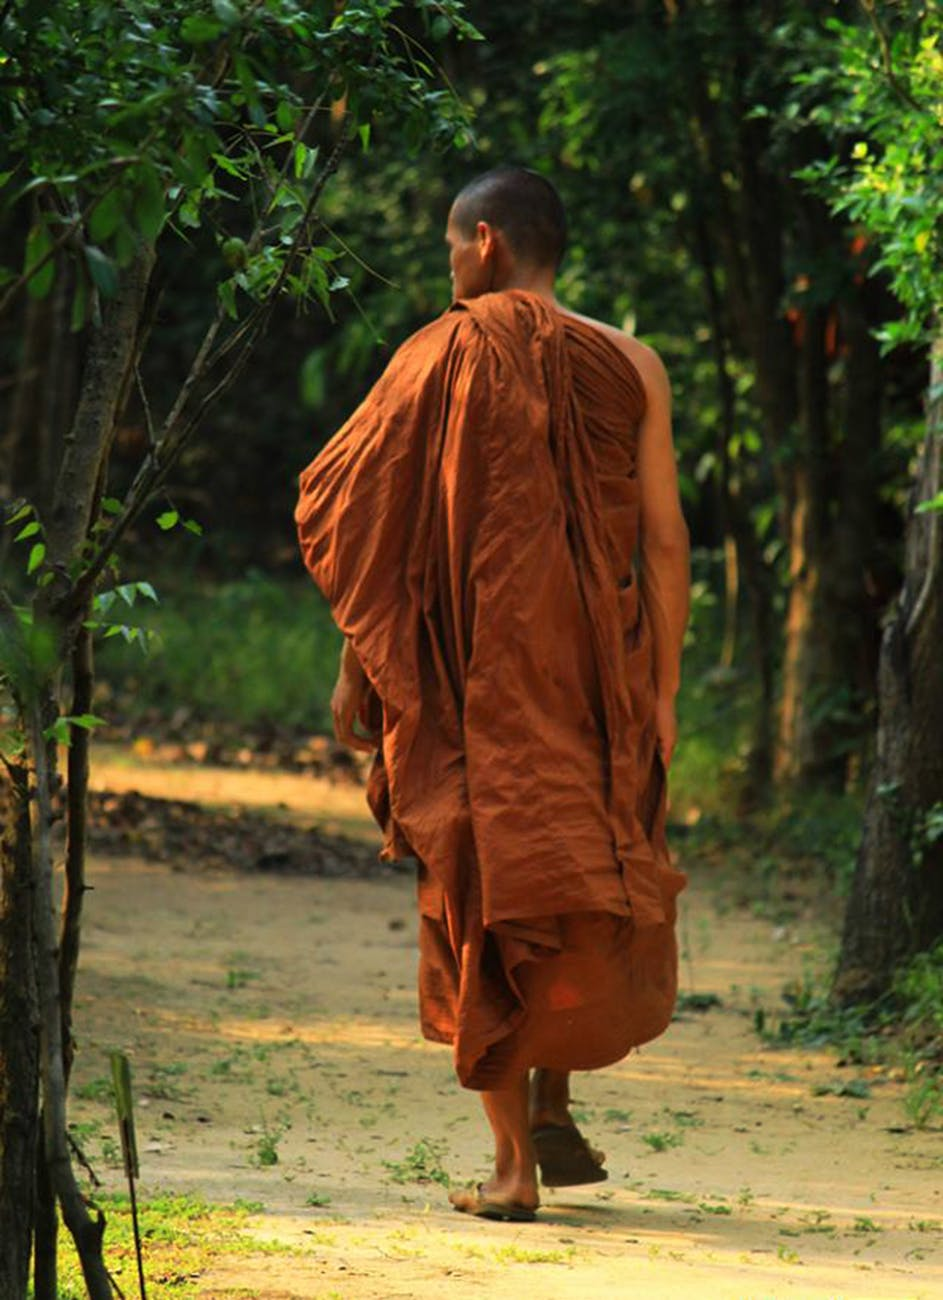 9 Sensational Lessons From The Monk Who Sold His Ferrari By Robin Sharma Unbounded Wisdom